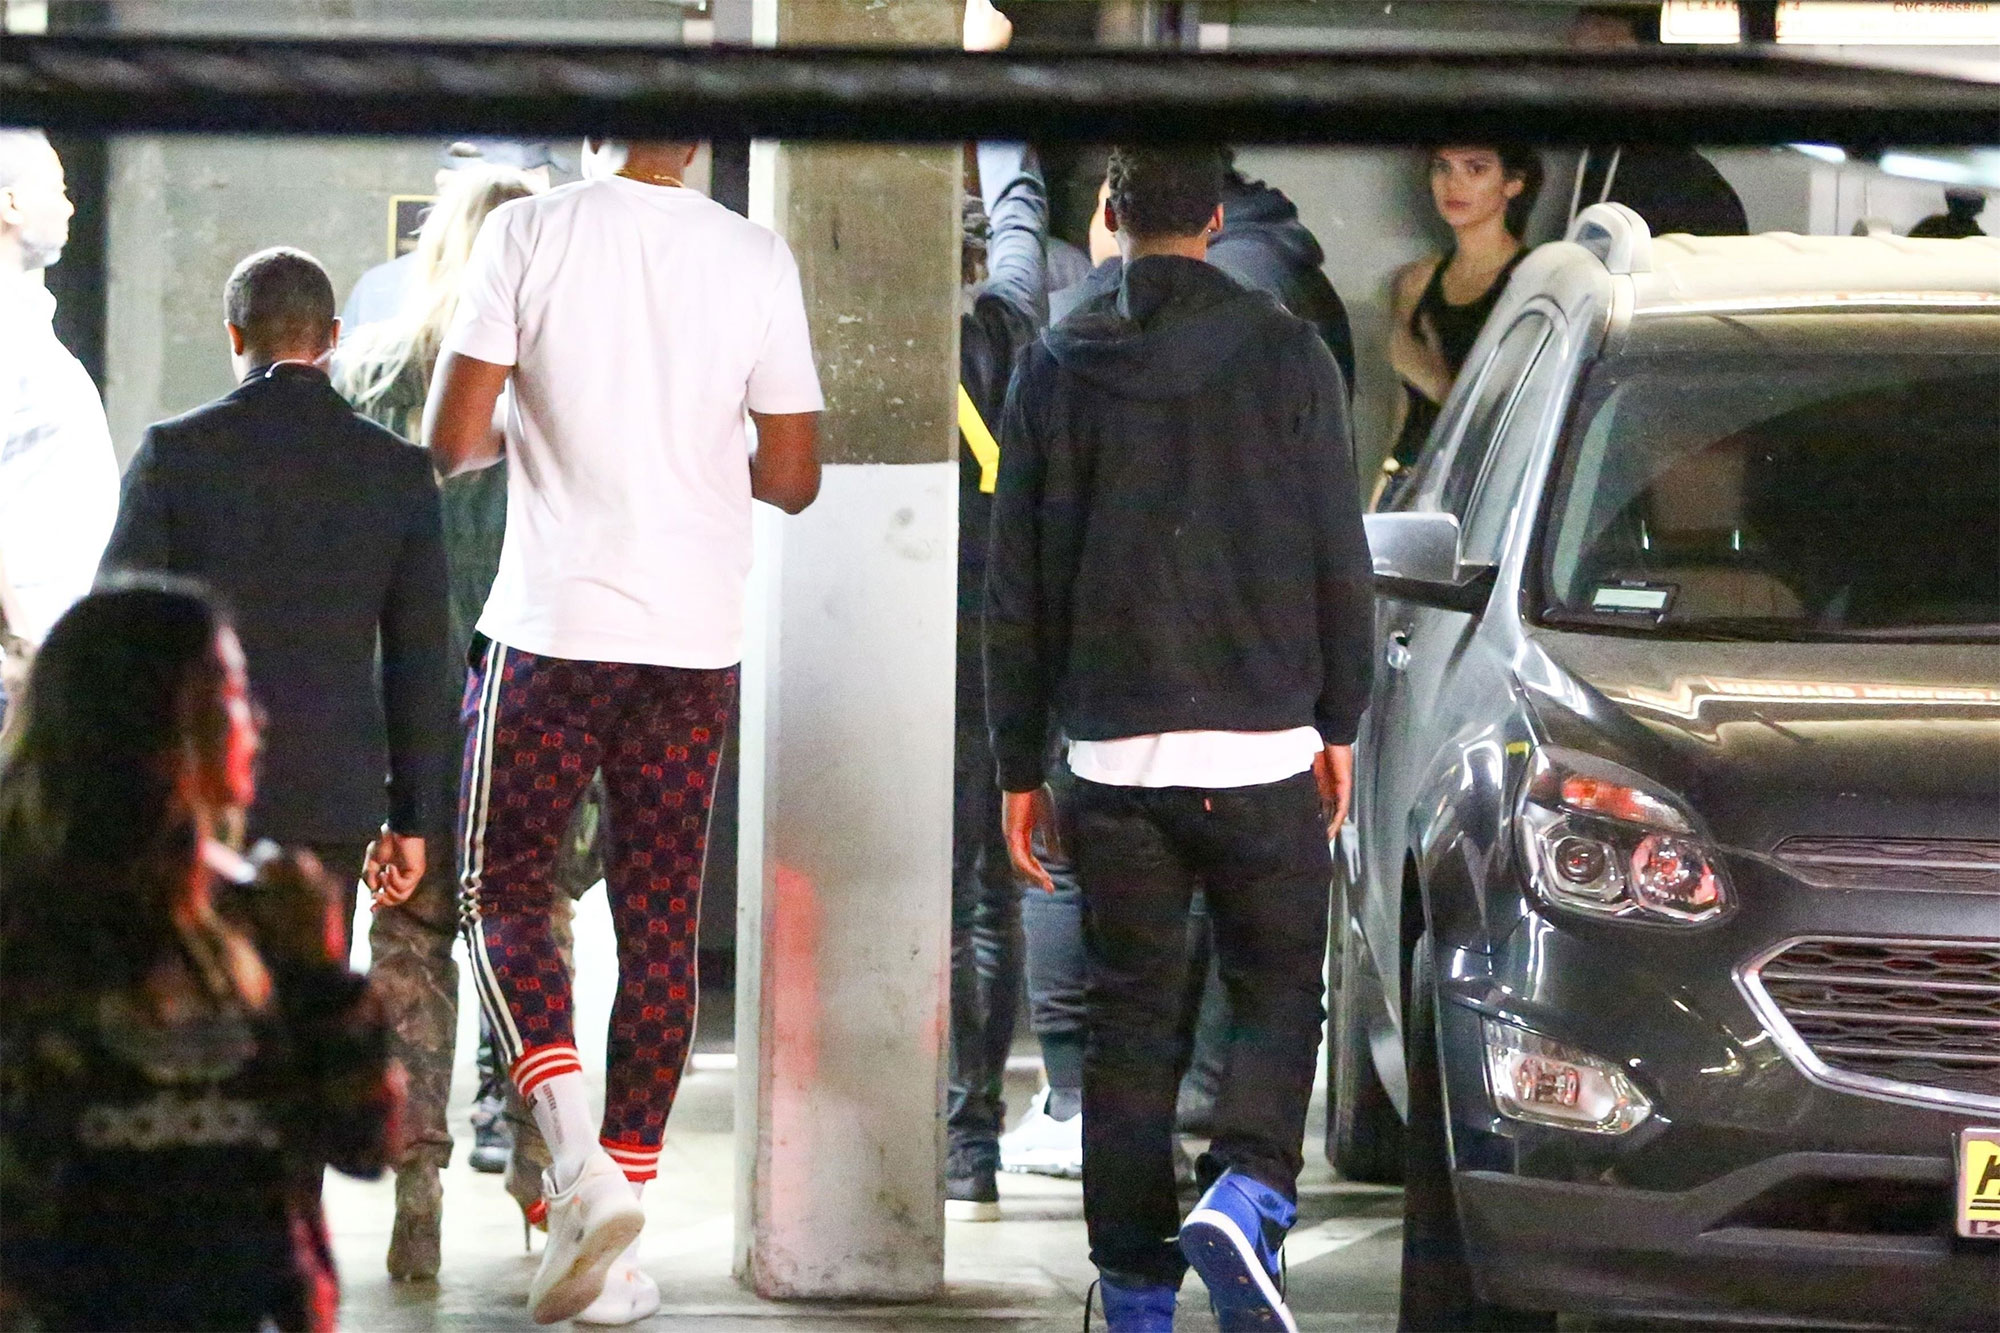 Kendall Jenner and Ben Simmons were seen arriving at Poppy nightclub with Khloe Kardashian and Tristan Thompson